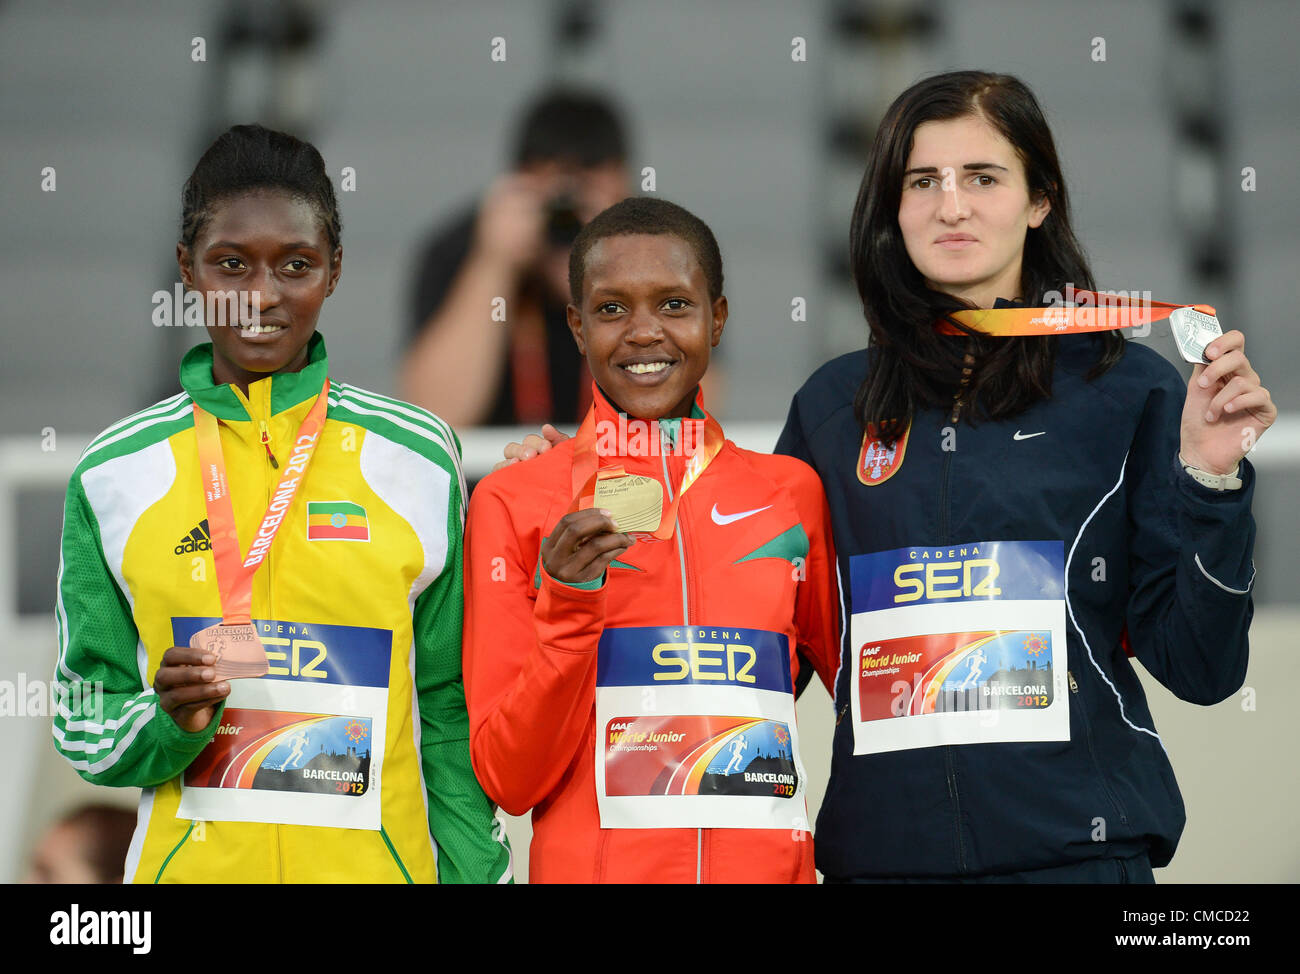 BARCELONA, Spain: Sunday 15 July 2012, Senbere Teferi (Ethiopia, bronze), Faith Chepngetich Kipyegon (Kenya, gold) - Stock Image